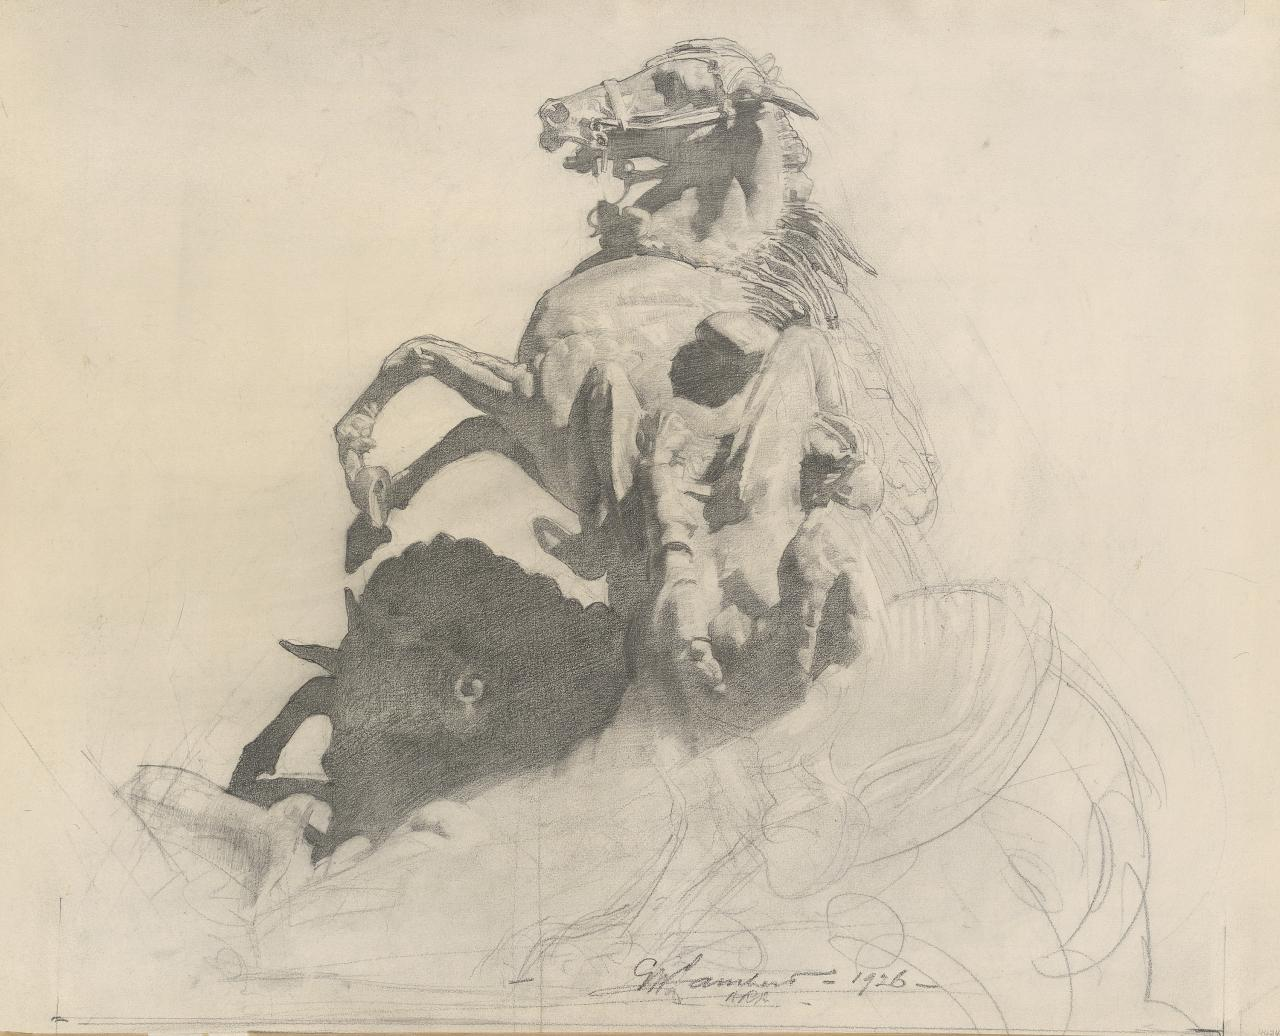 Study for the Desert Mounted Corps Memorial